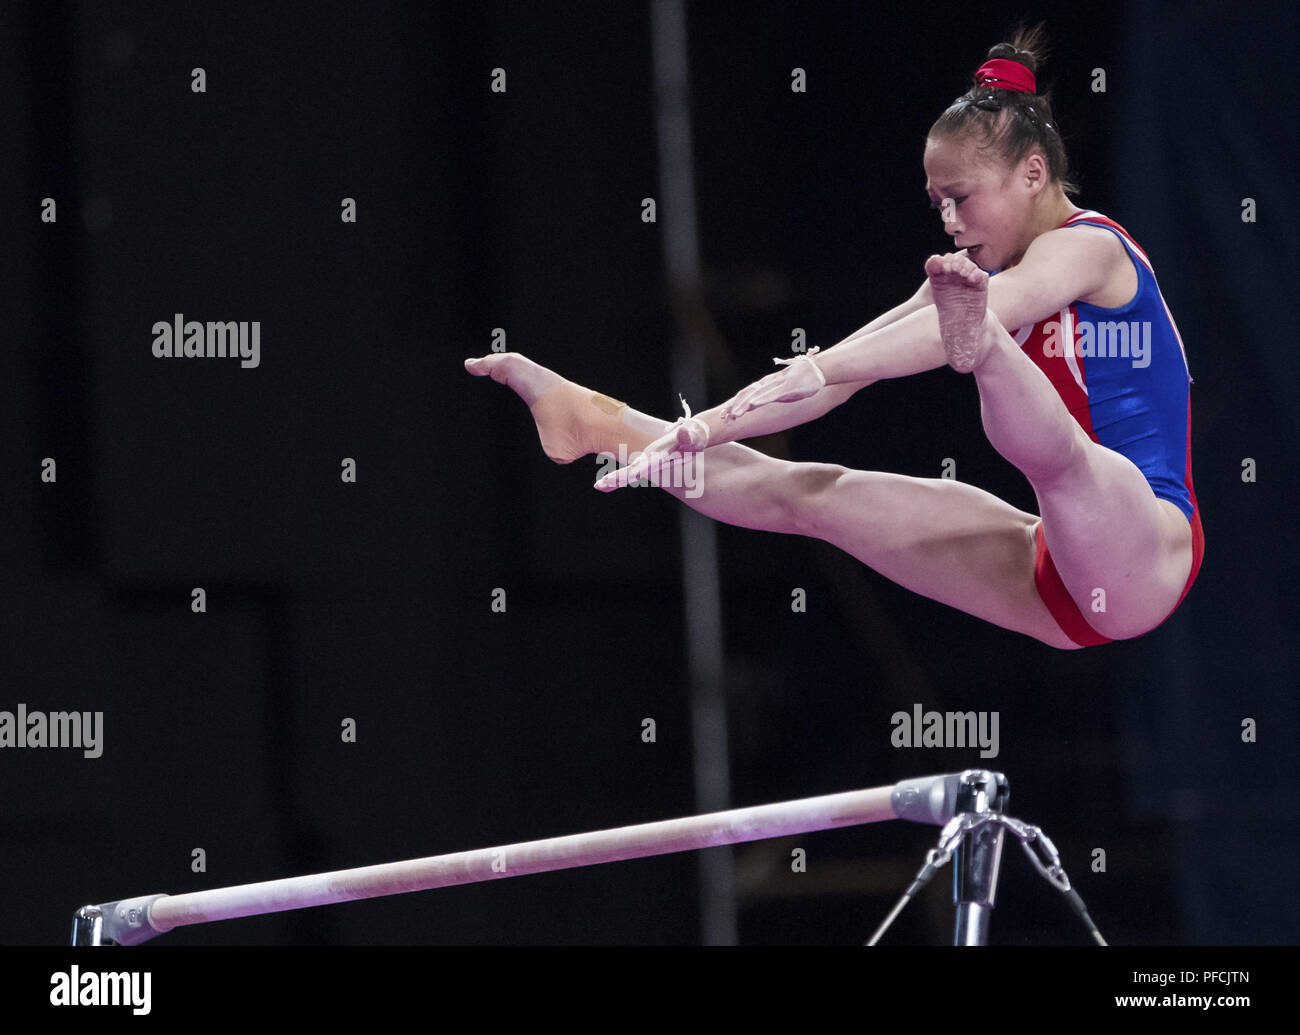 d669ec94d7c1 Kim Su Jong of the Democratic People's Republic of Korea competes during  her Uneven Bars competition of Artistic Gymnastics Women's Qualifications  ...